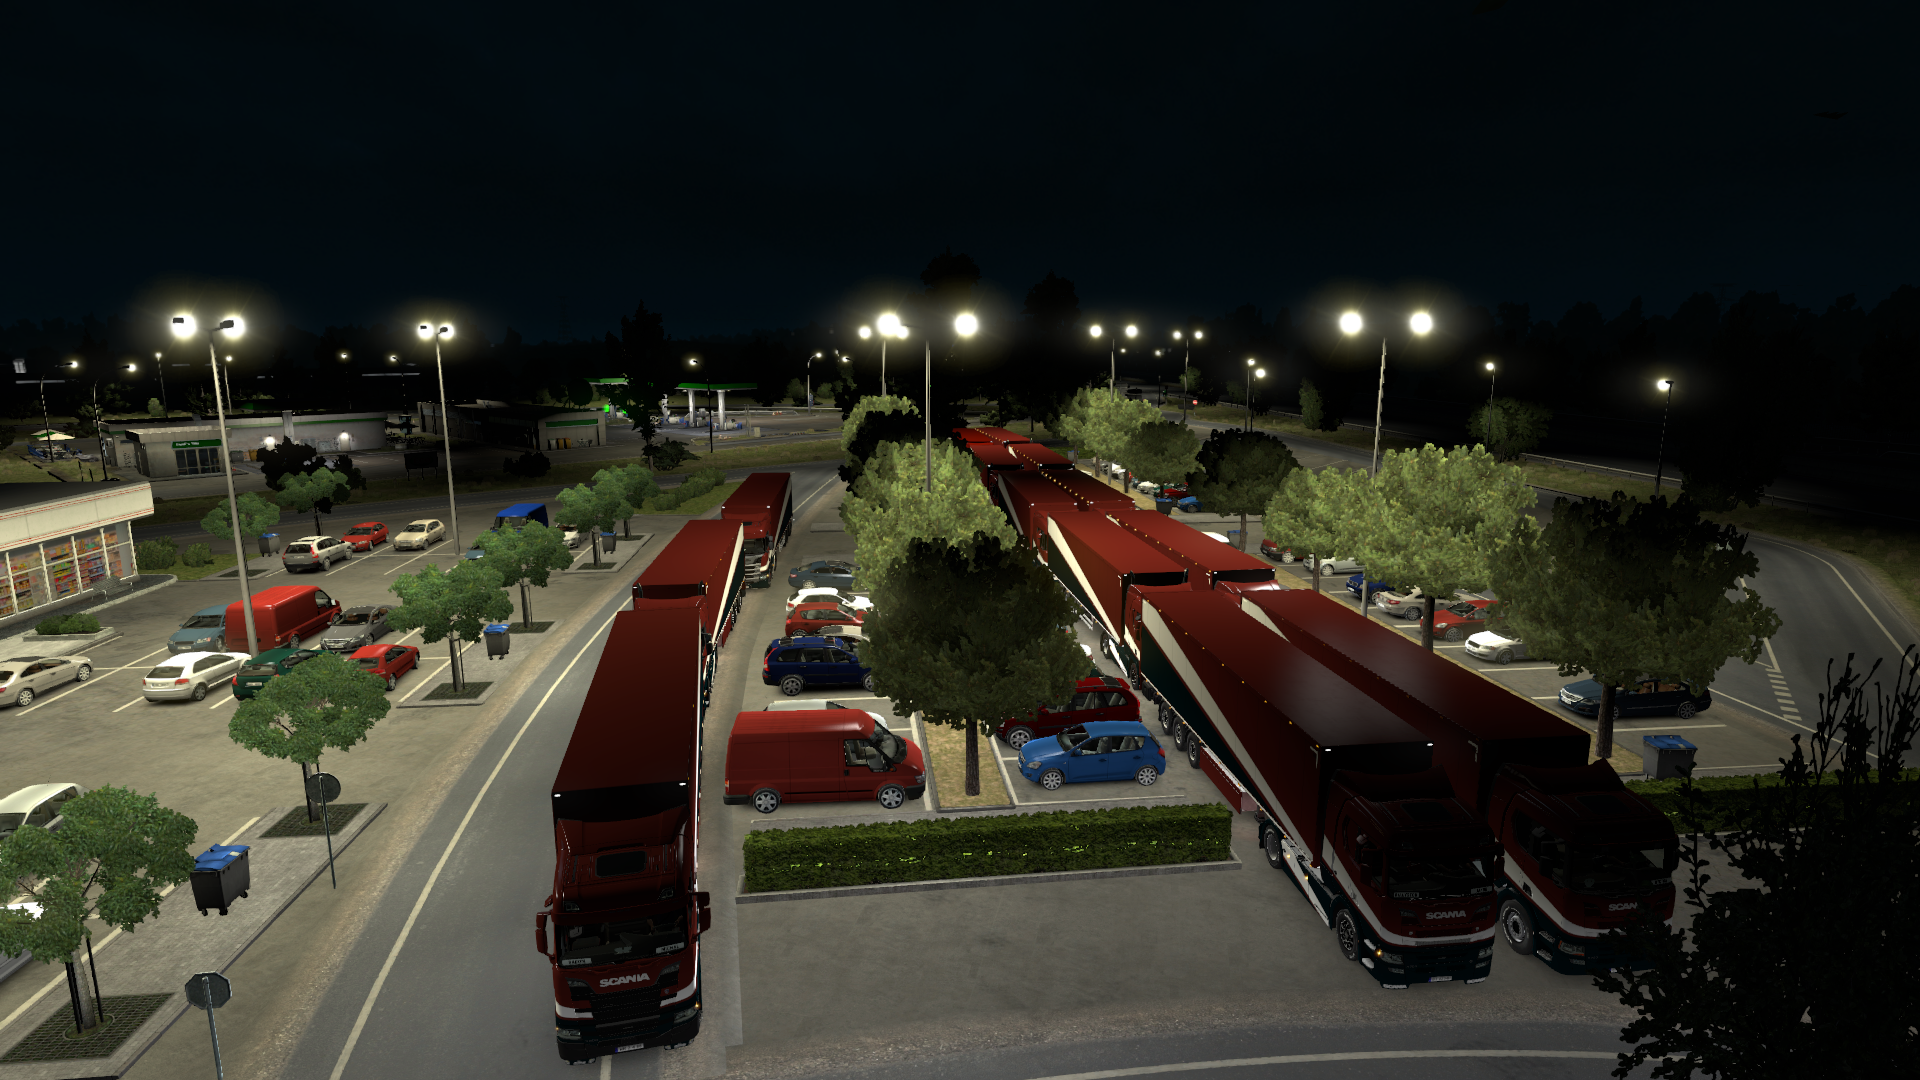 ets2_20190119_203324_00.png